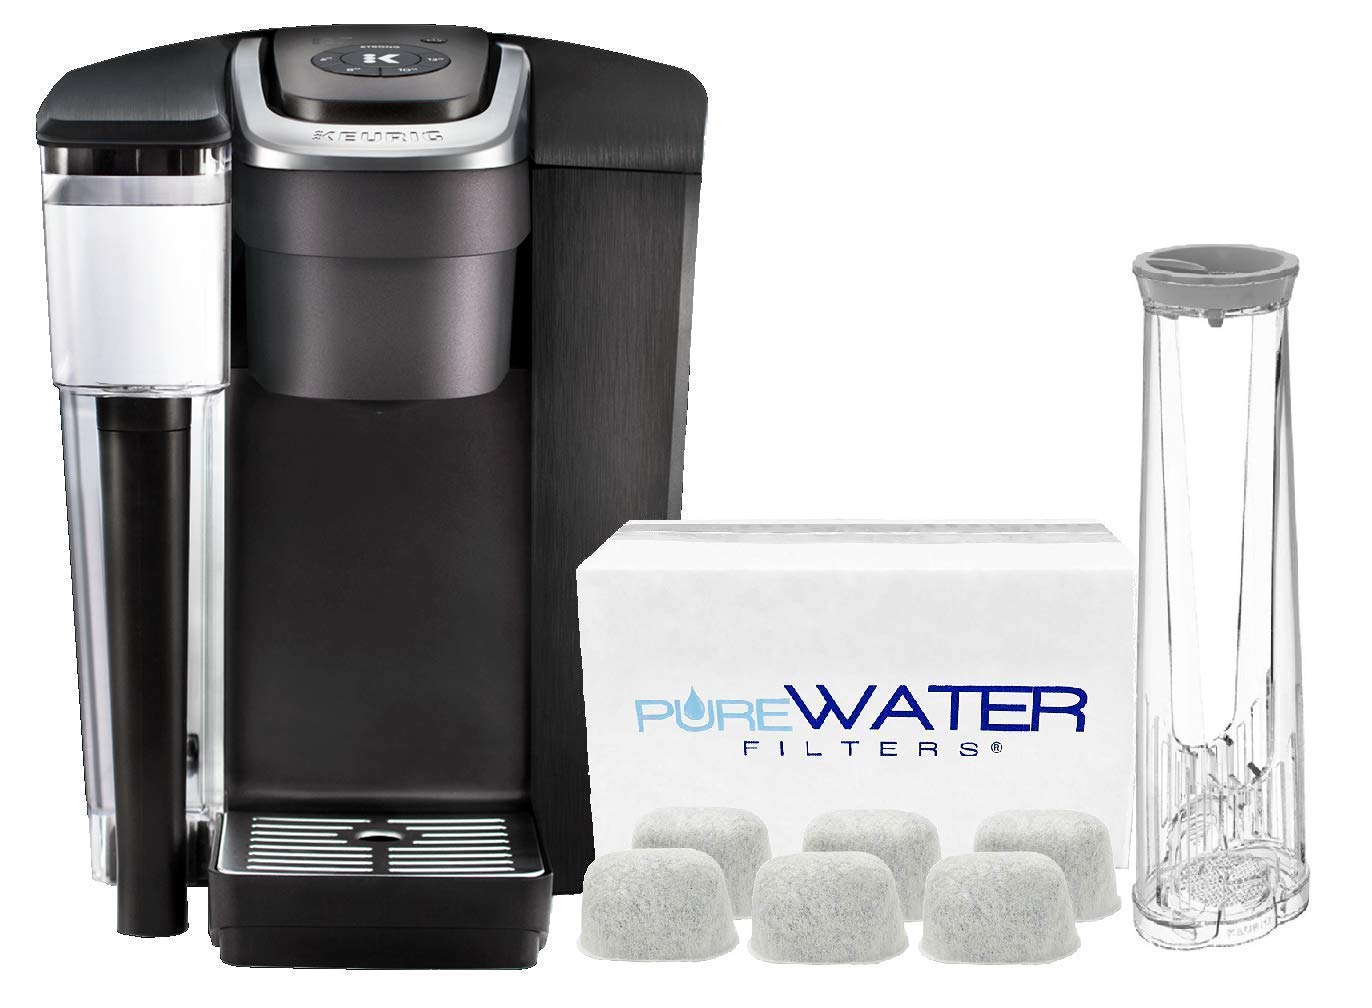 PureWater Filters bundle K1500 Commercial Single Serve Coffee Brewer by Keurig with 6 Charcoal Water Filters and Holder by PureWater Filters by PureWater Filters (Image #1)